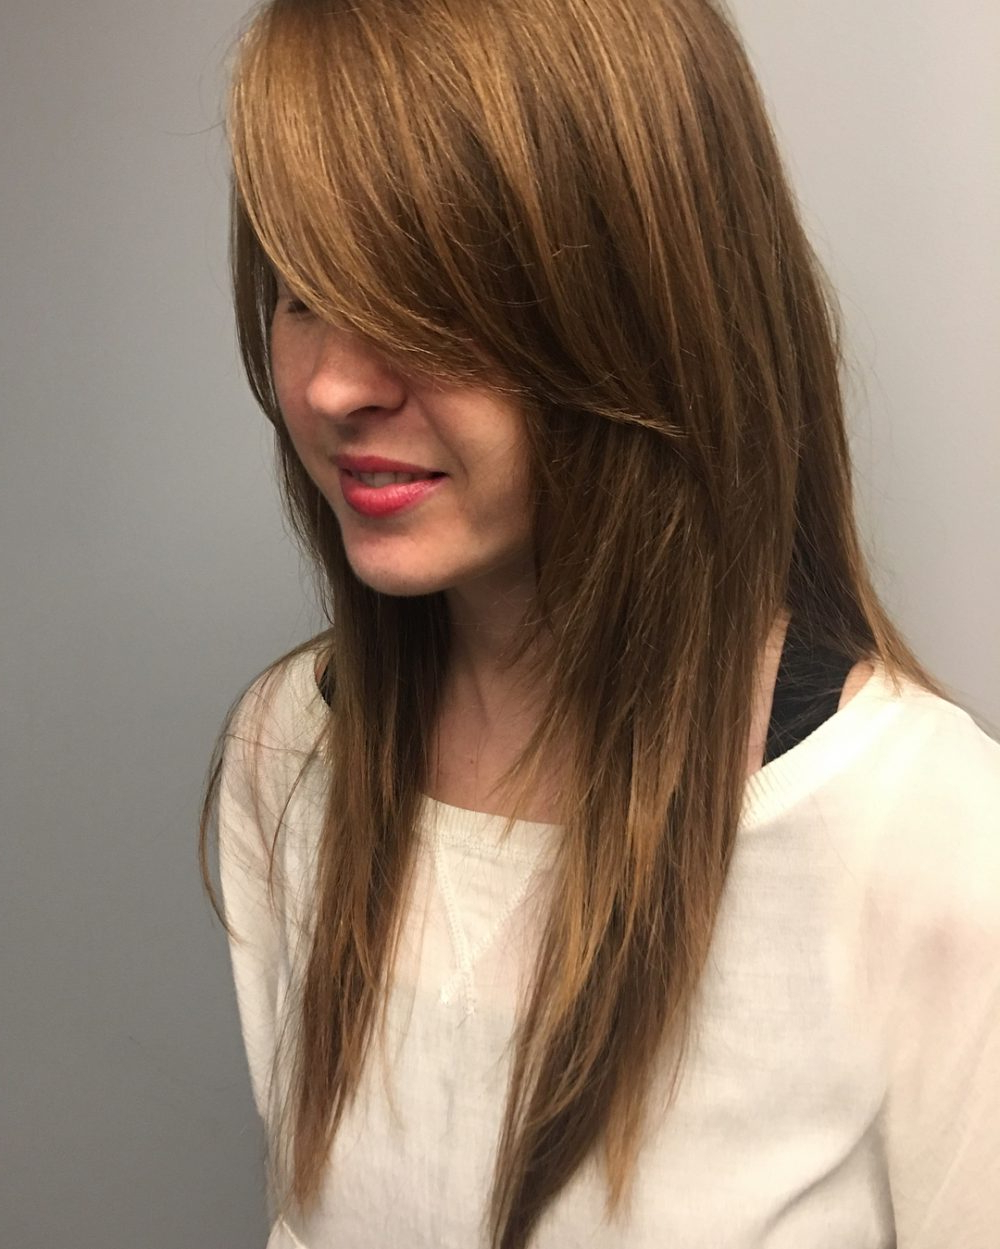 Fashionable Long Shag Haircuts With Extreme Layers For Long Shag Haircuts: 36 Examples For (View 3 of 20)